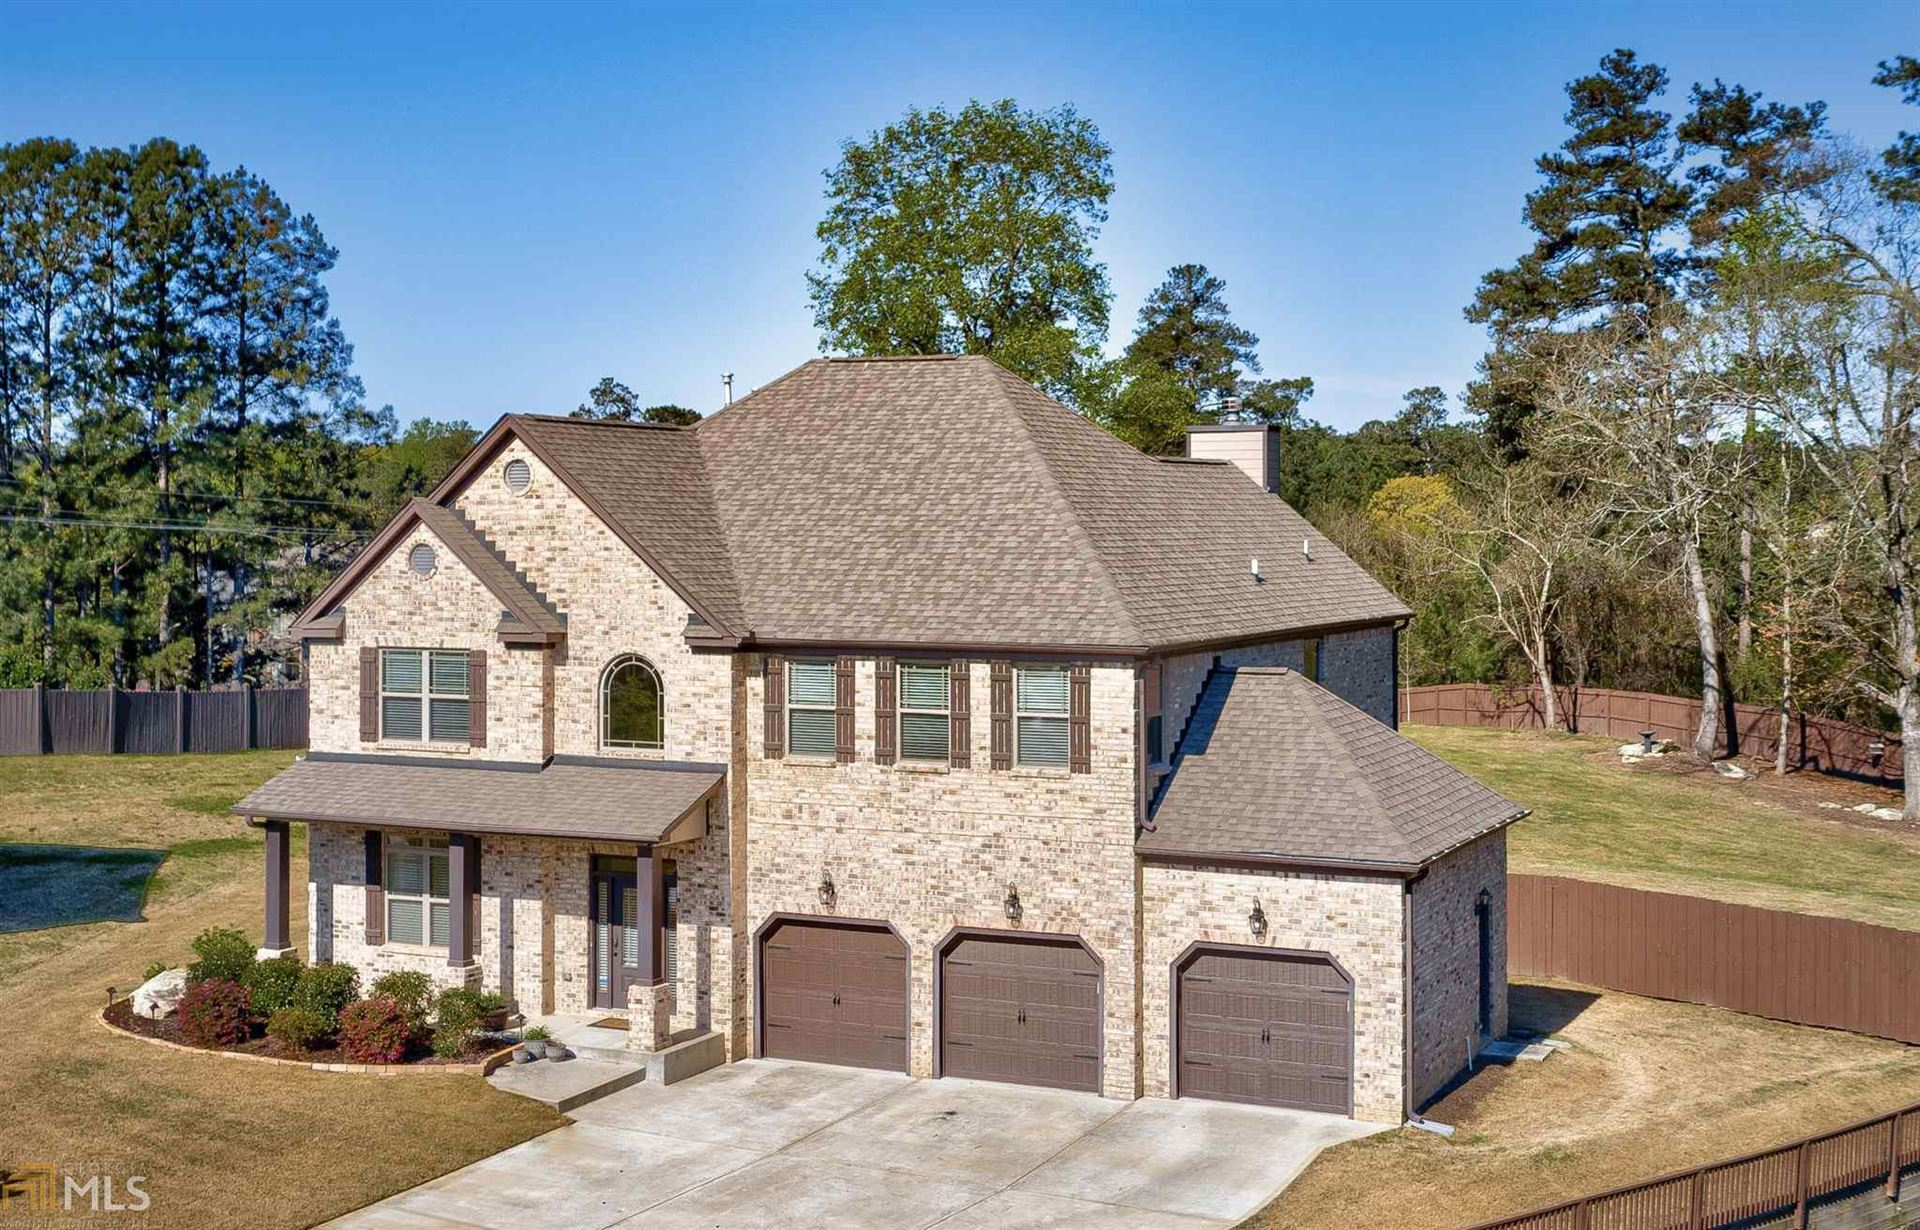 520 Willie Kate Ln, Lawrenceville, GA 30045 - #: 8766575